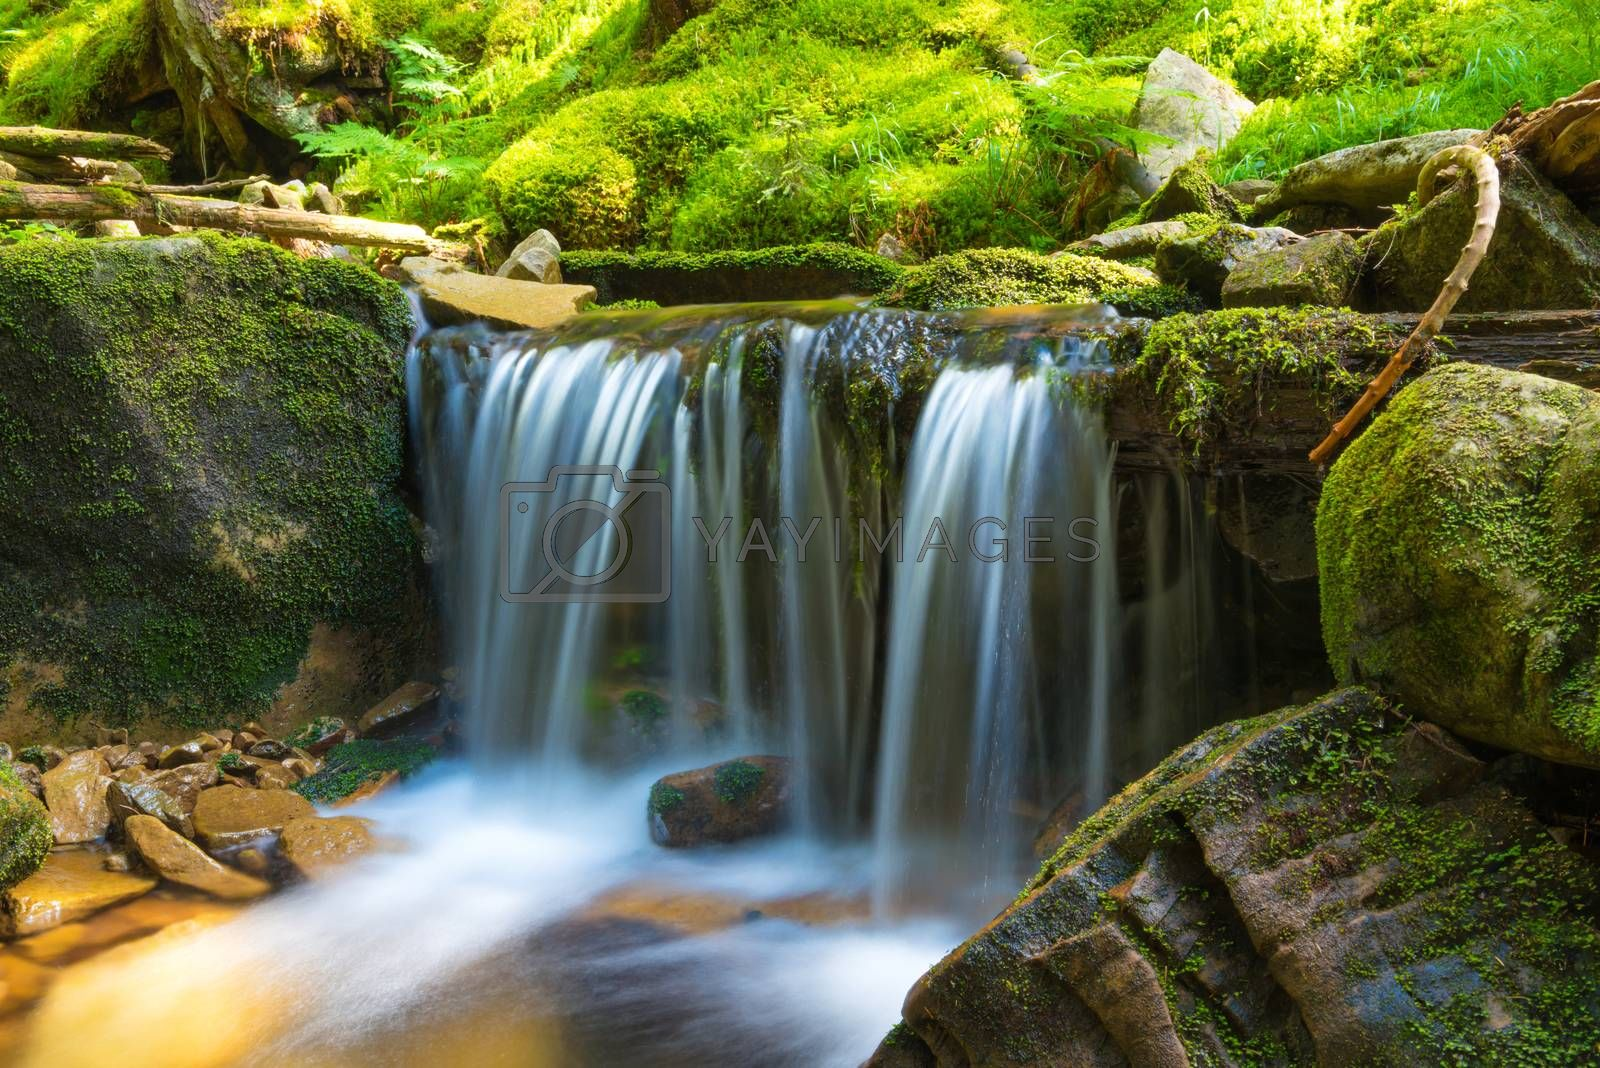 Waterfall in the forest by vapi